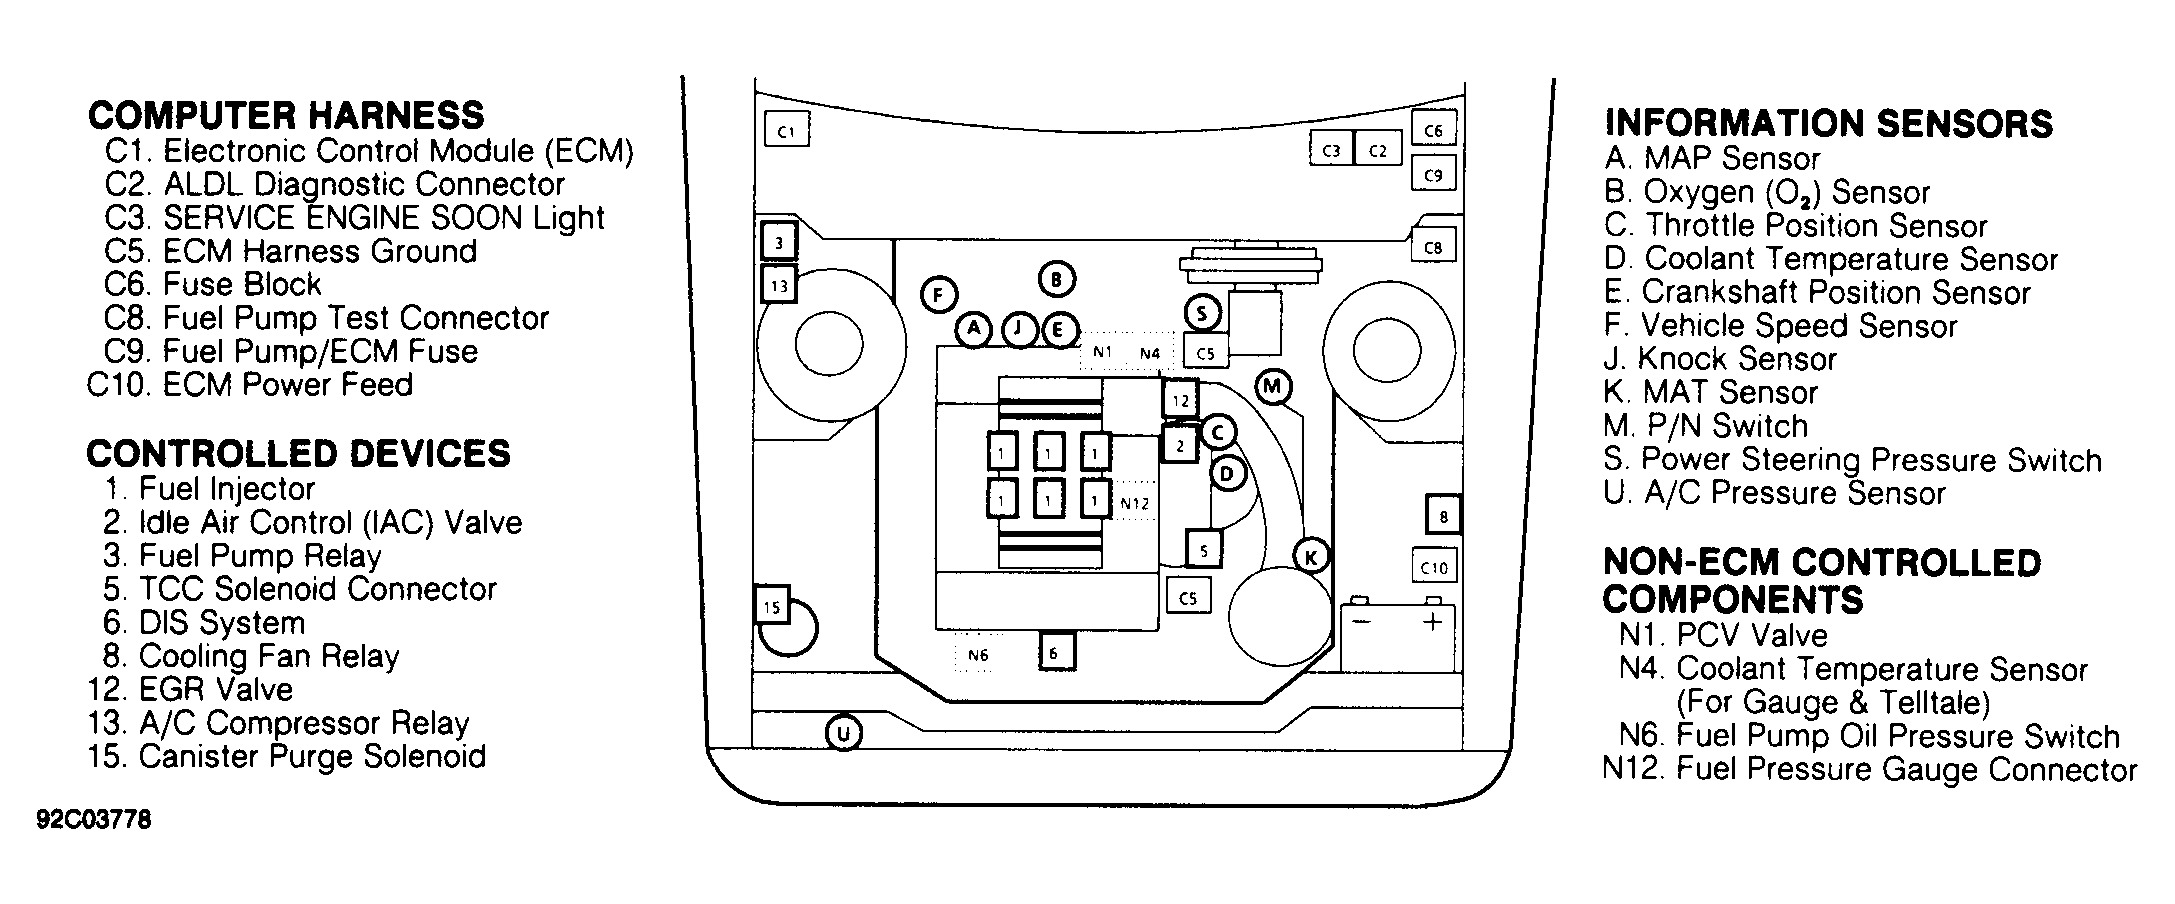 diagrams k 5 fuse box diagram wiring diagram needed for 89 k5 Fiat Wallpaper fiat stilo fuse box layout